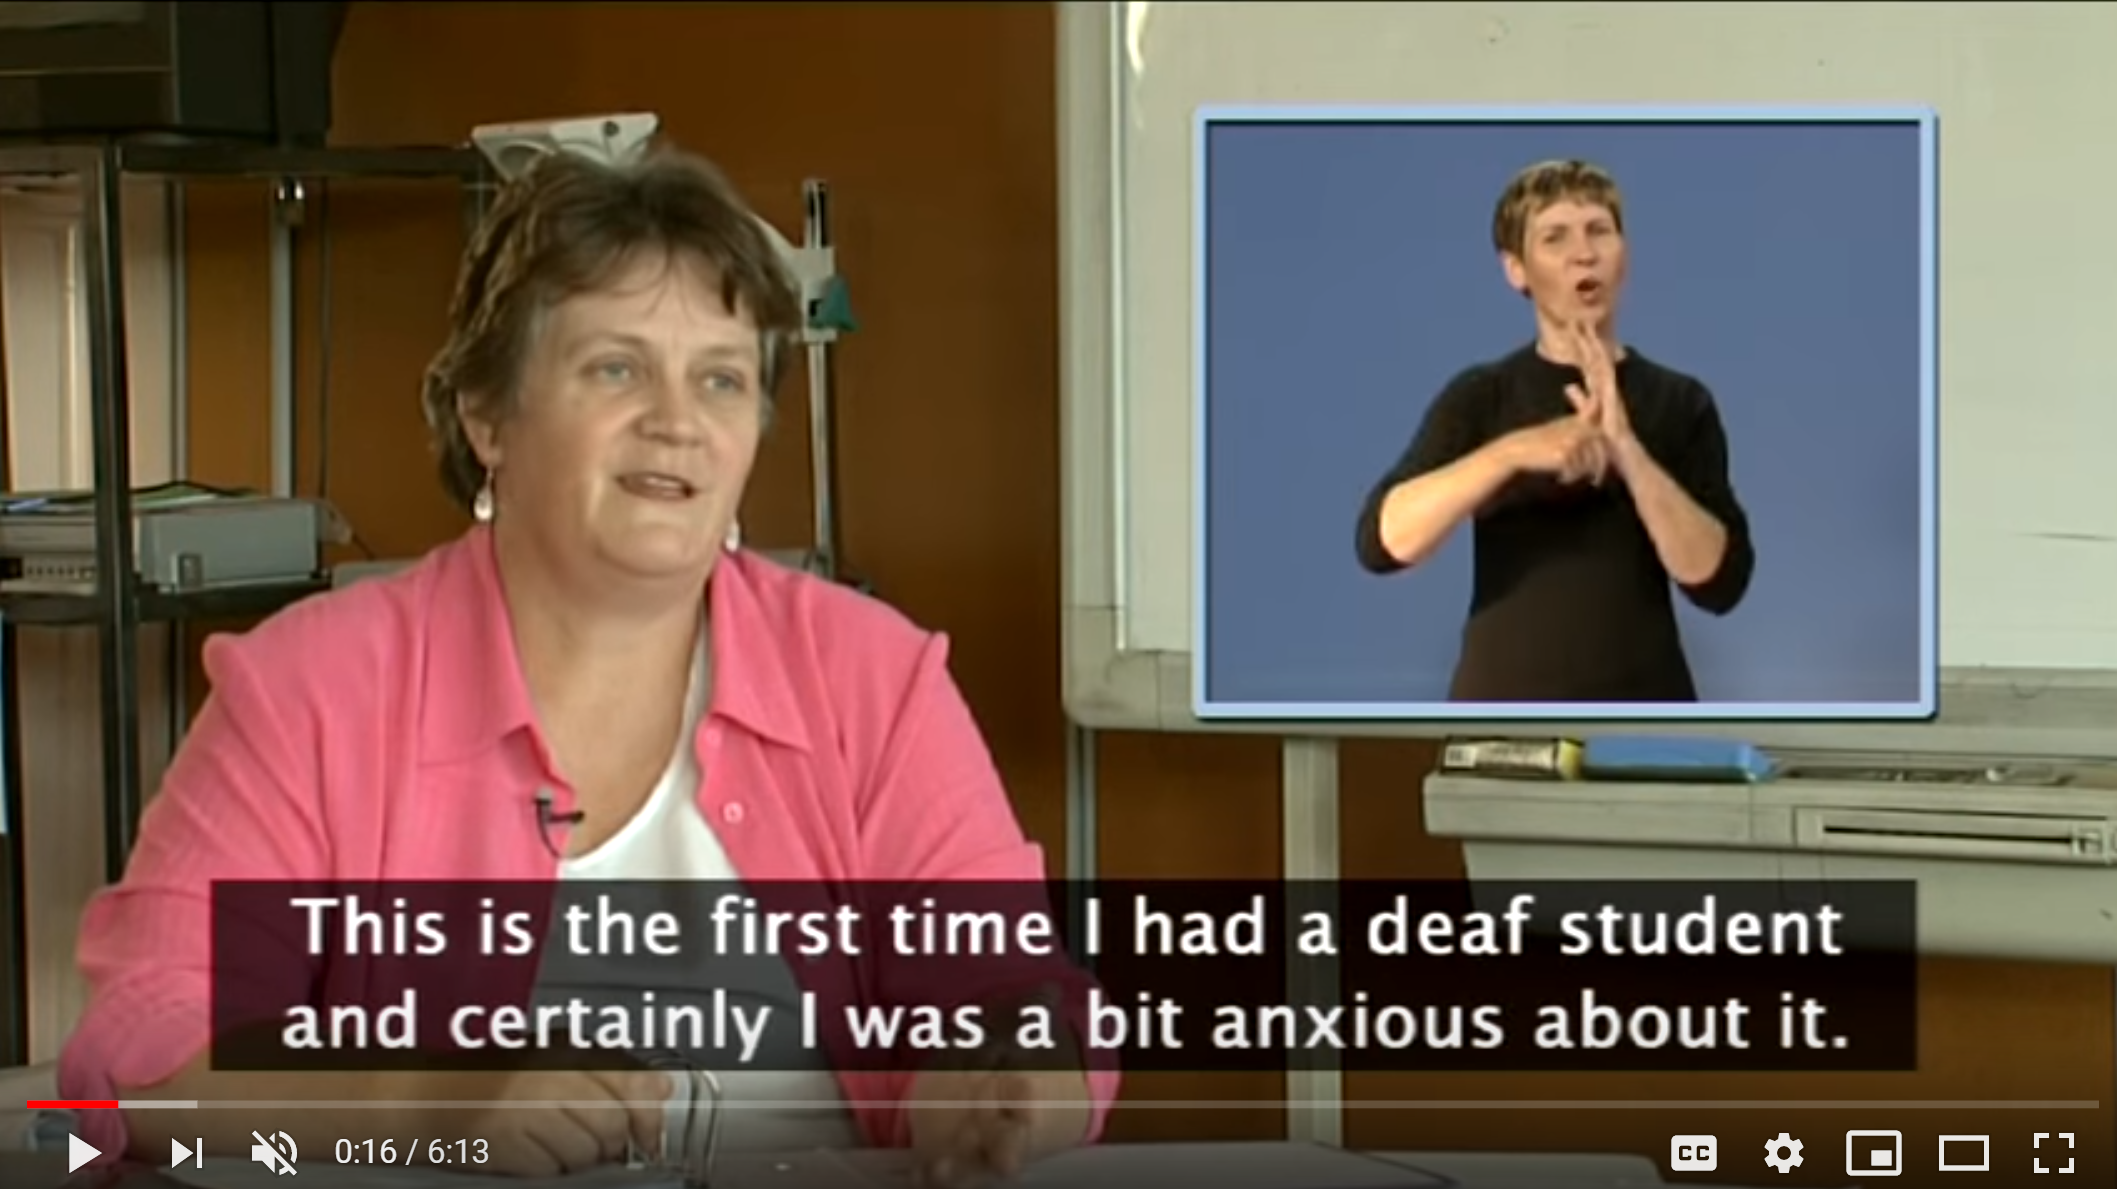 """Screenshot from a captioned video in which a woman is saying, """"This is the first time I had a deaf student and certainly I was a bit anxious about it."""" An Australian Sign Language interpreter is shown in the corner of the screen."""